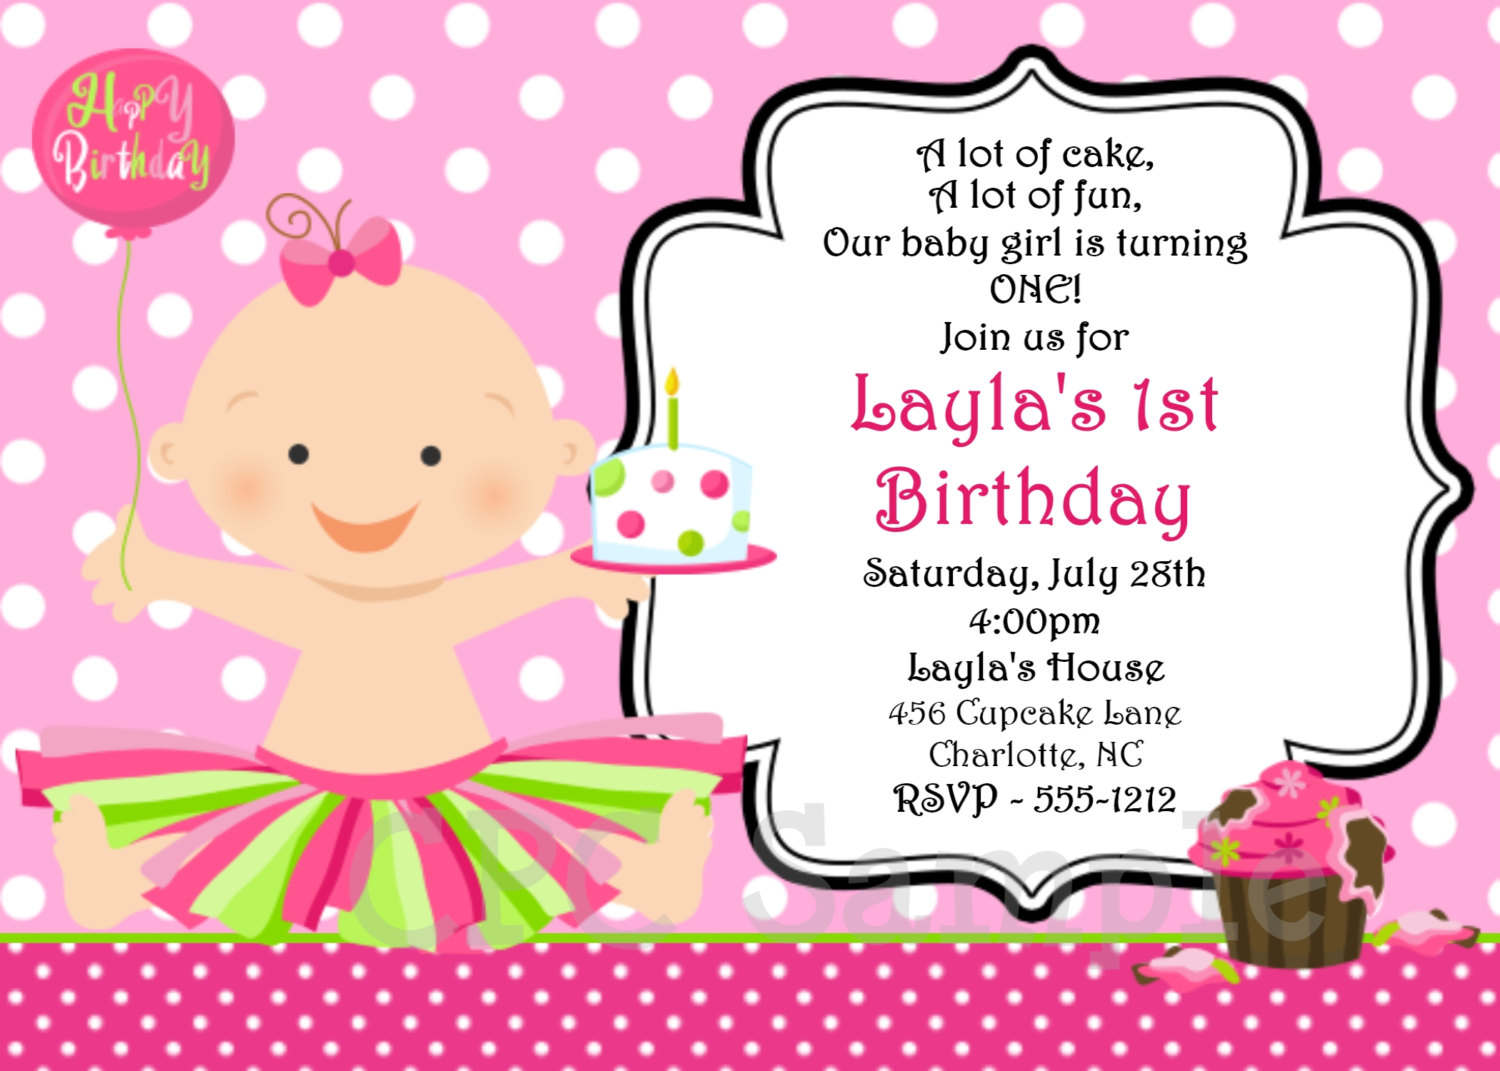 pictures of birthday invitation cards ; 15-Elegant-Happy-Birthday-Invitation-Cards-Ideas-for-the-Party-Guests-5